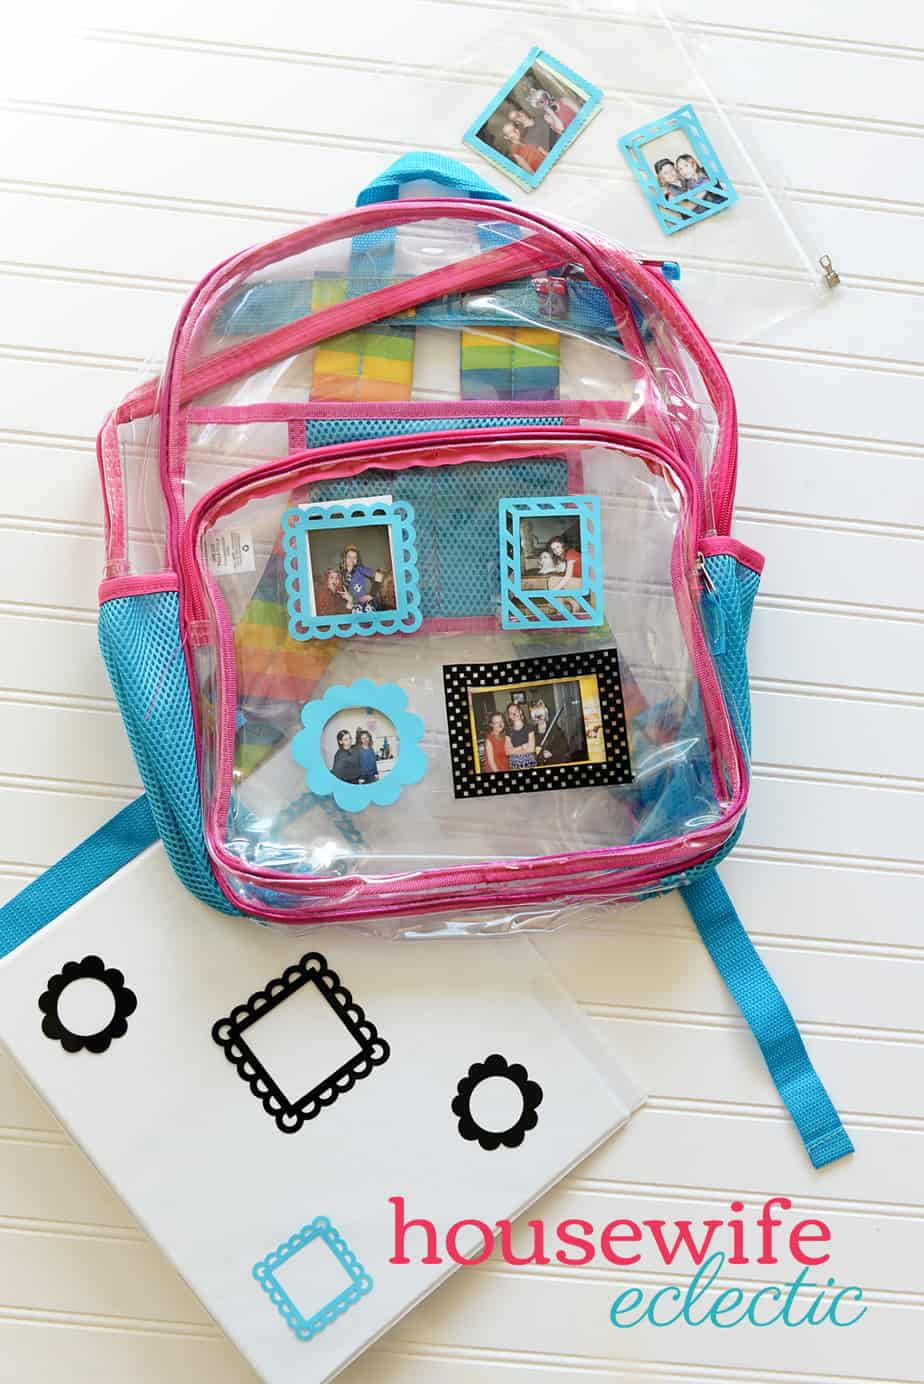 Housewife Eclectic: Instant Photo Frame Backpack